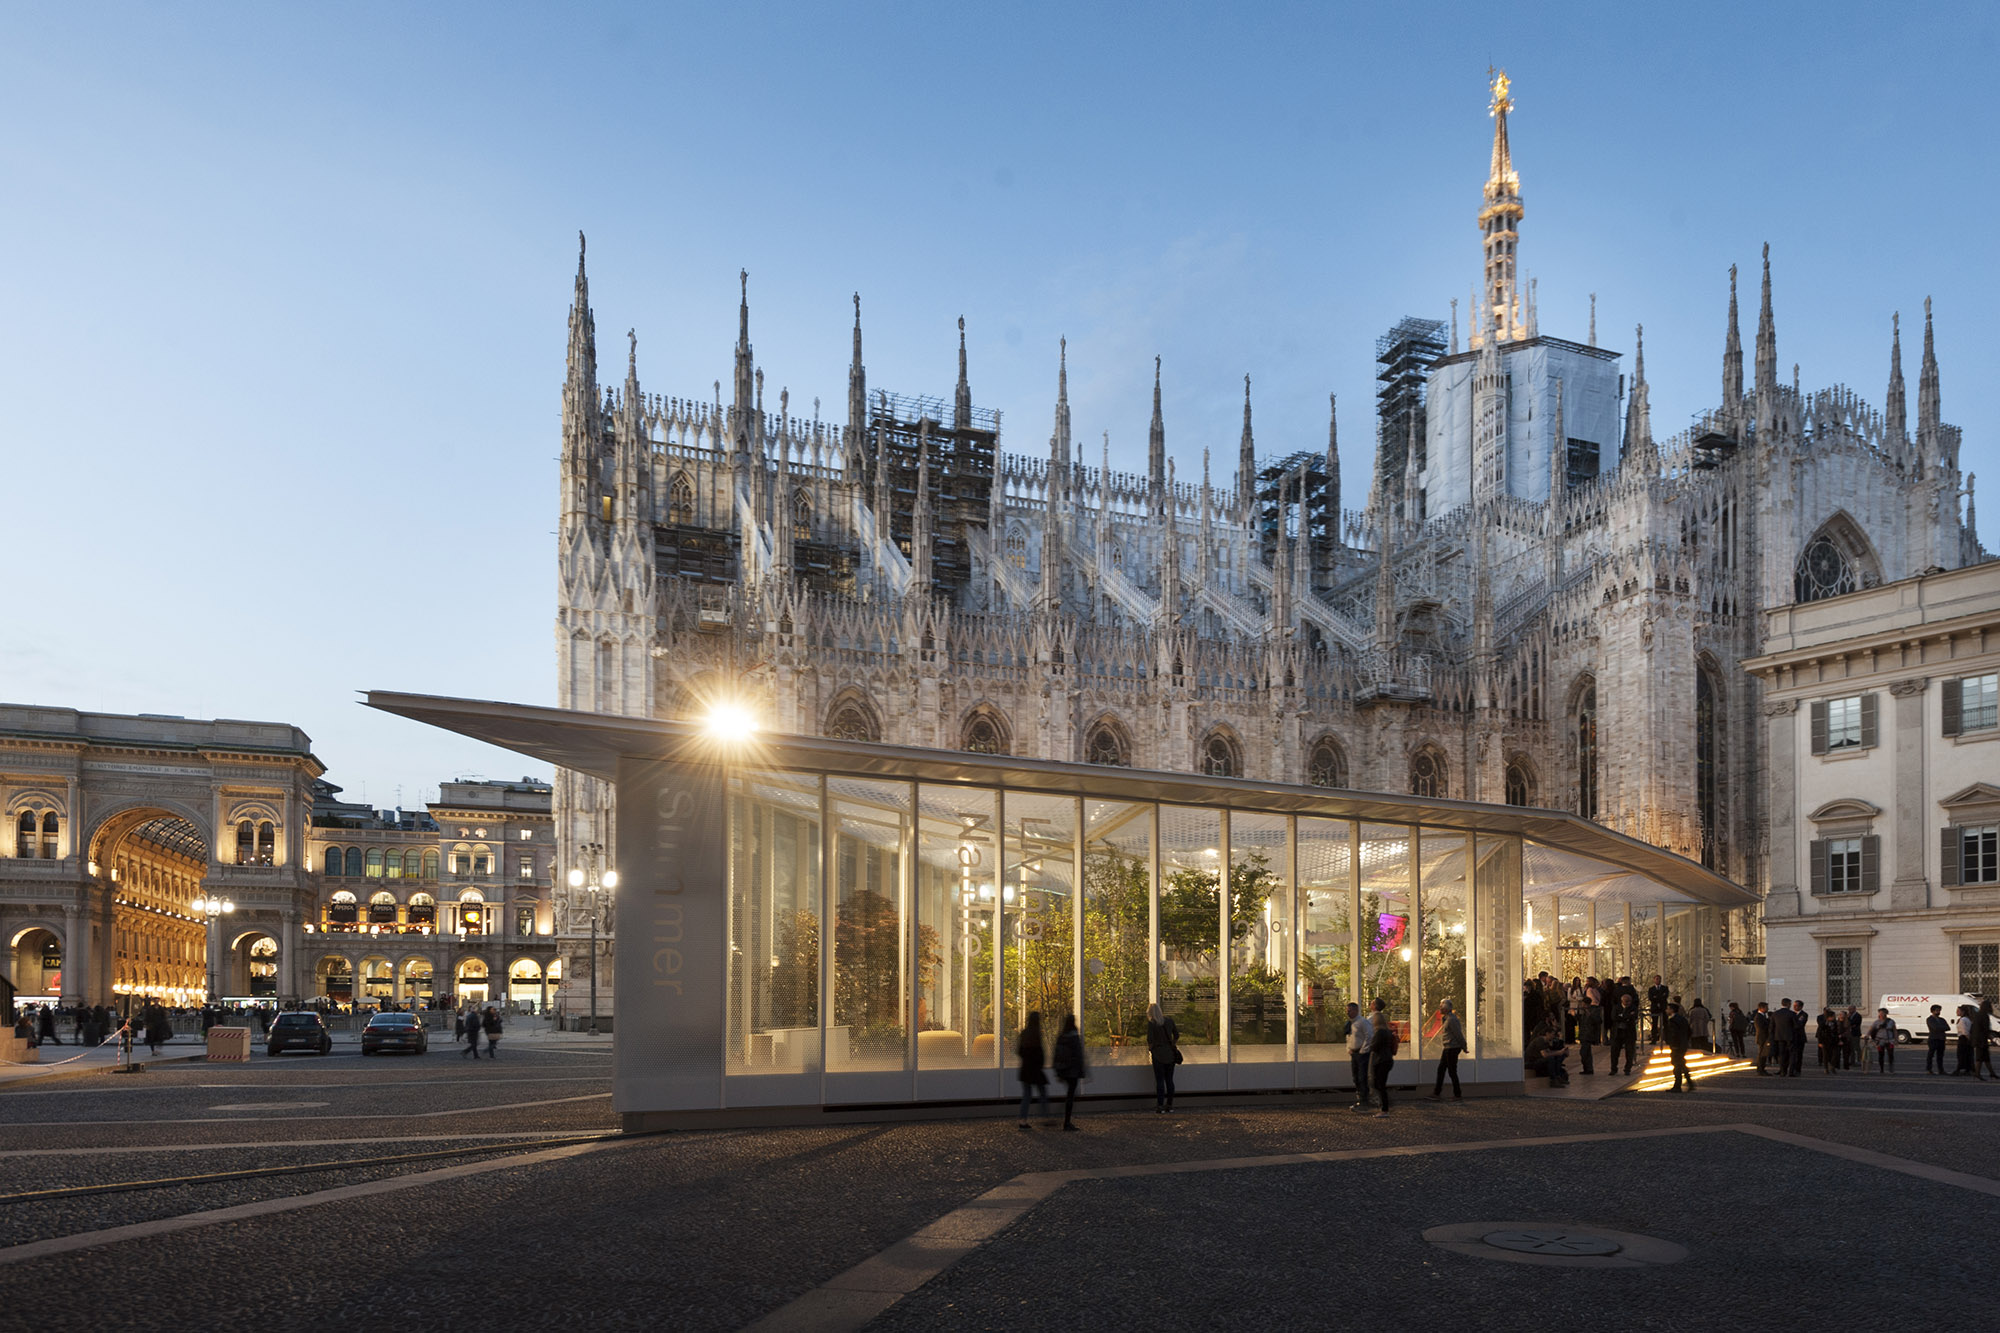 Living Nature, a reflection on nature and habitat in the shadow of the magnificent Duomo de Milan.